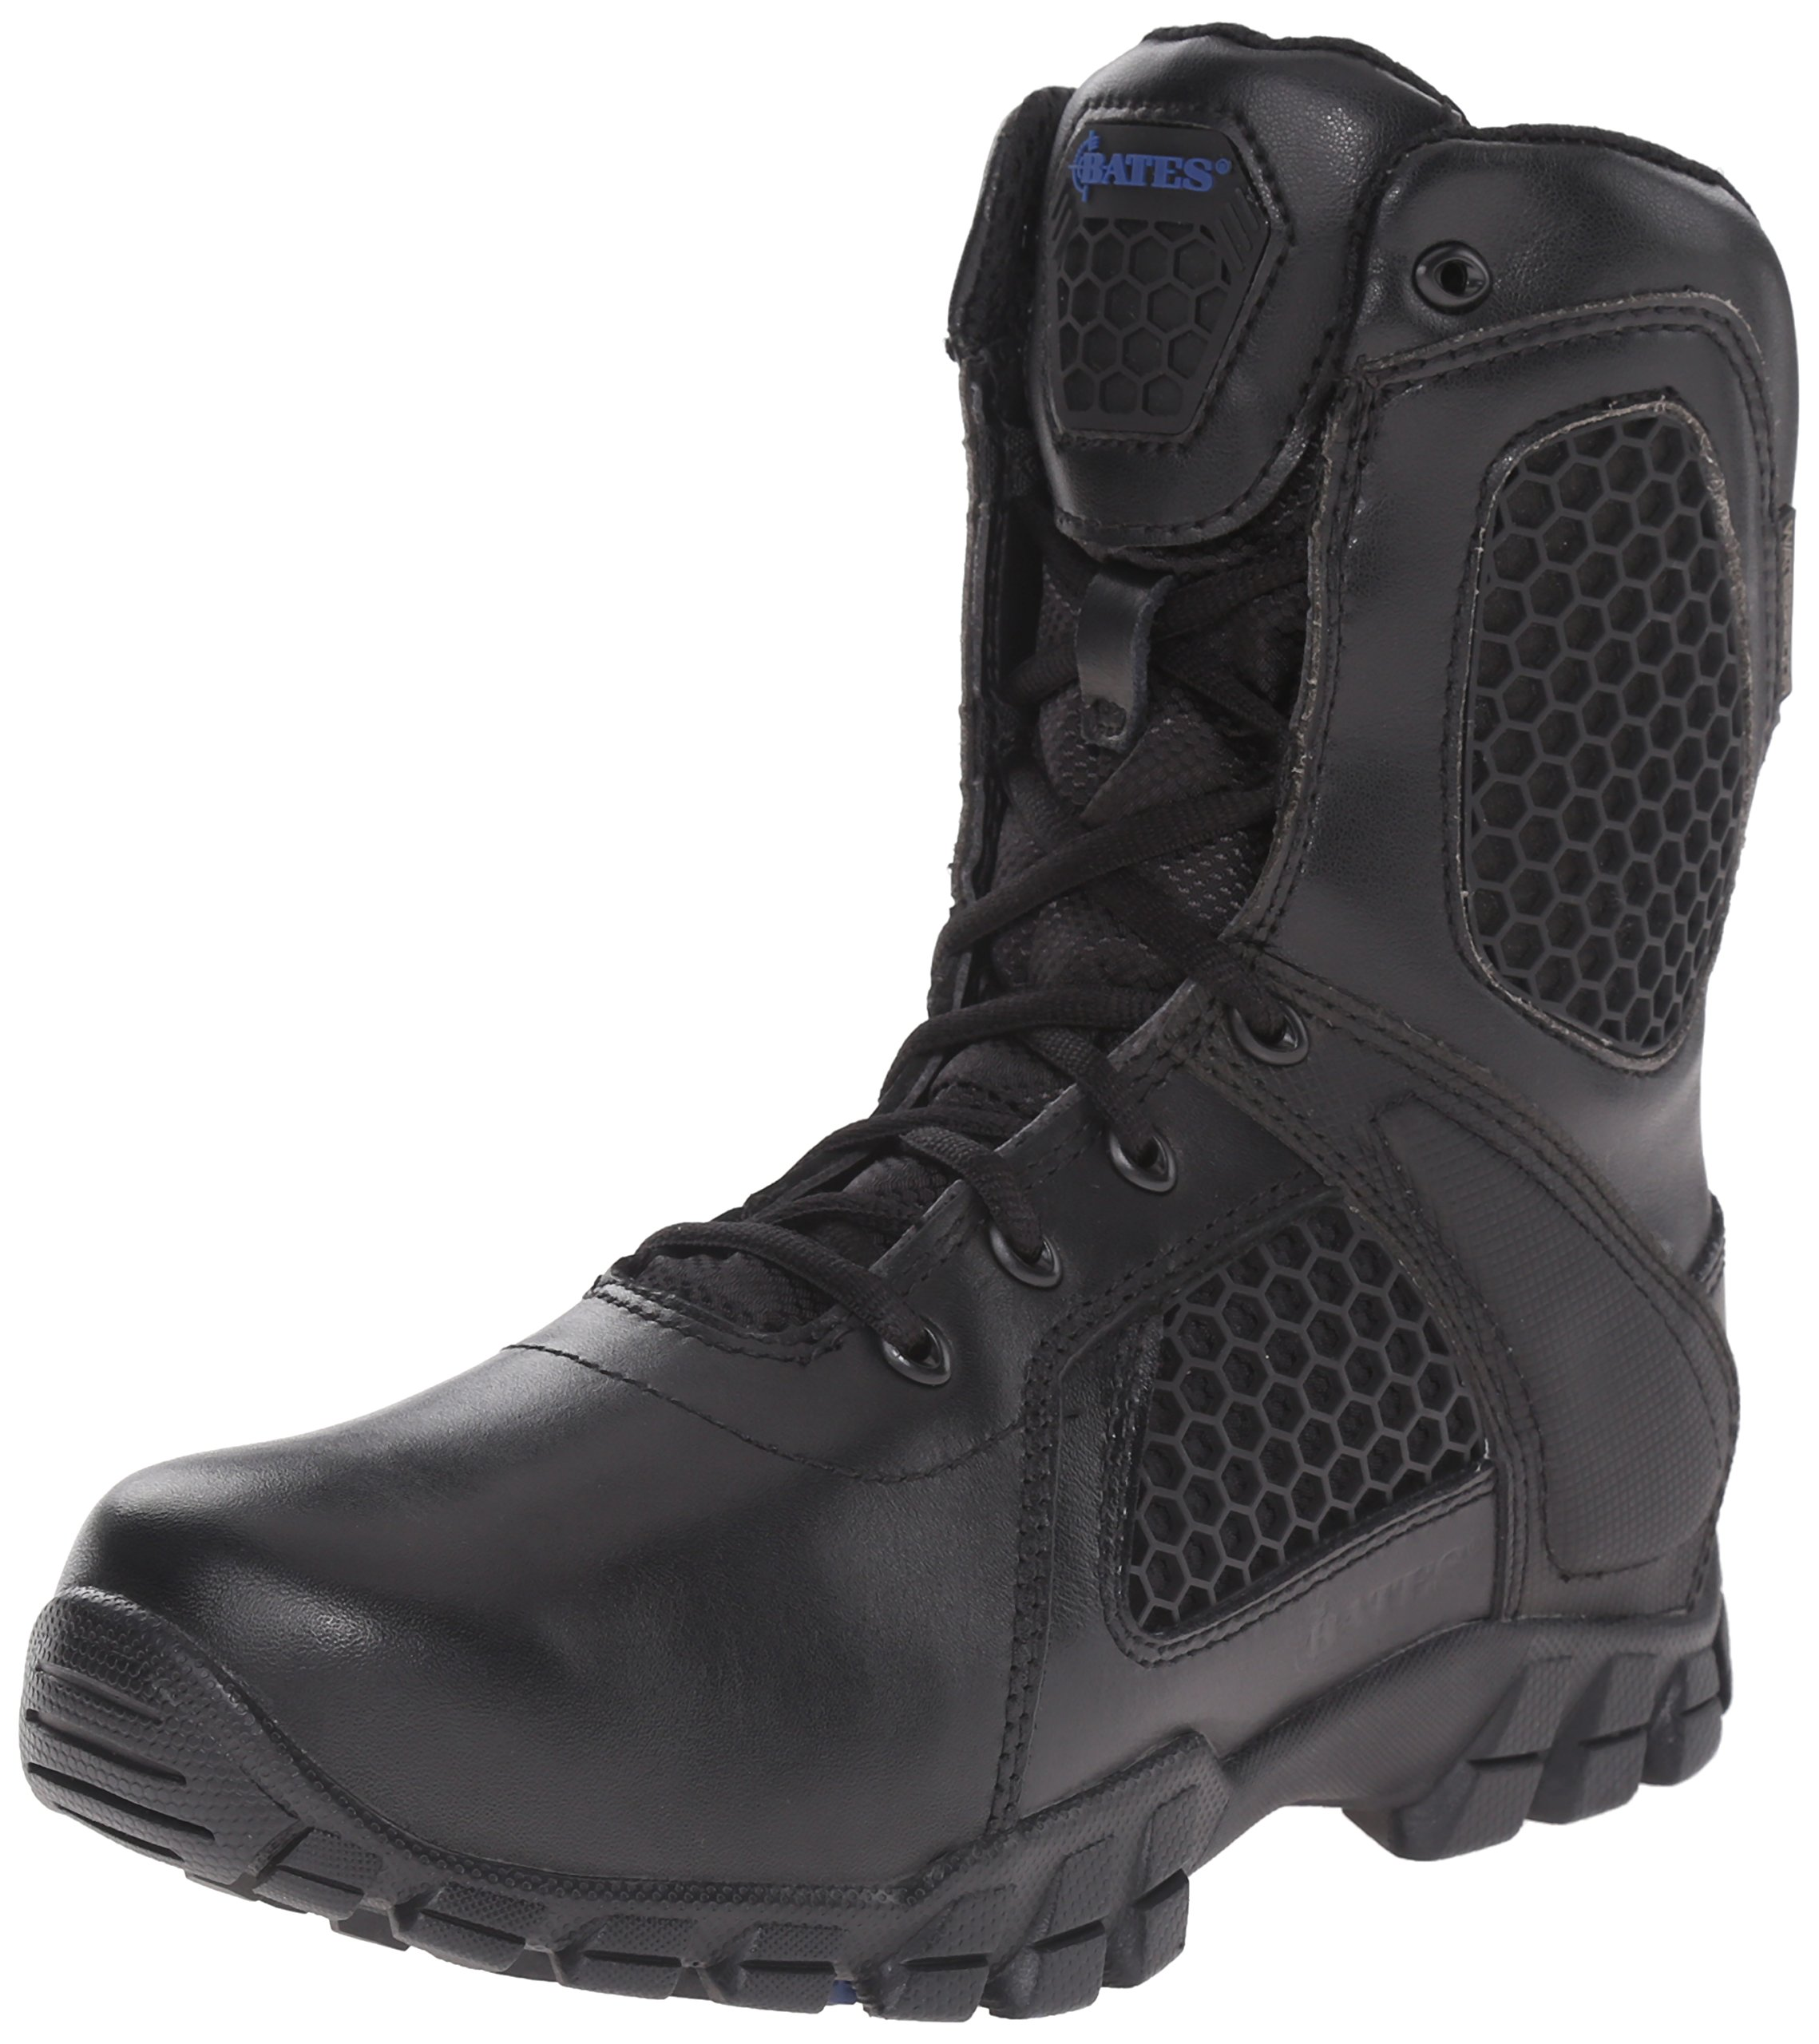 Bates Women's Strike 8 Inch Side Zip Military & Tactical Boot, Black, 9.5 M US by Bates